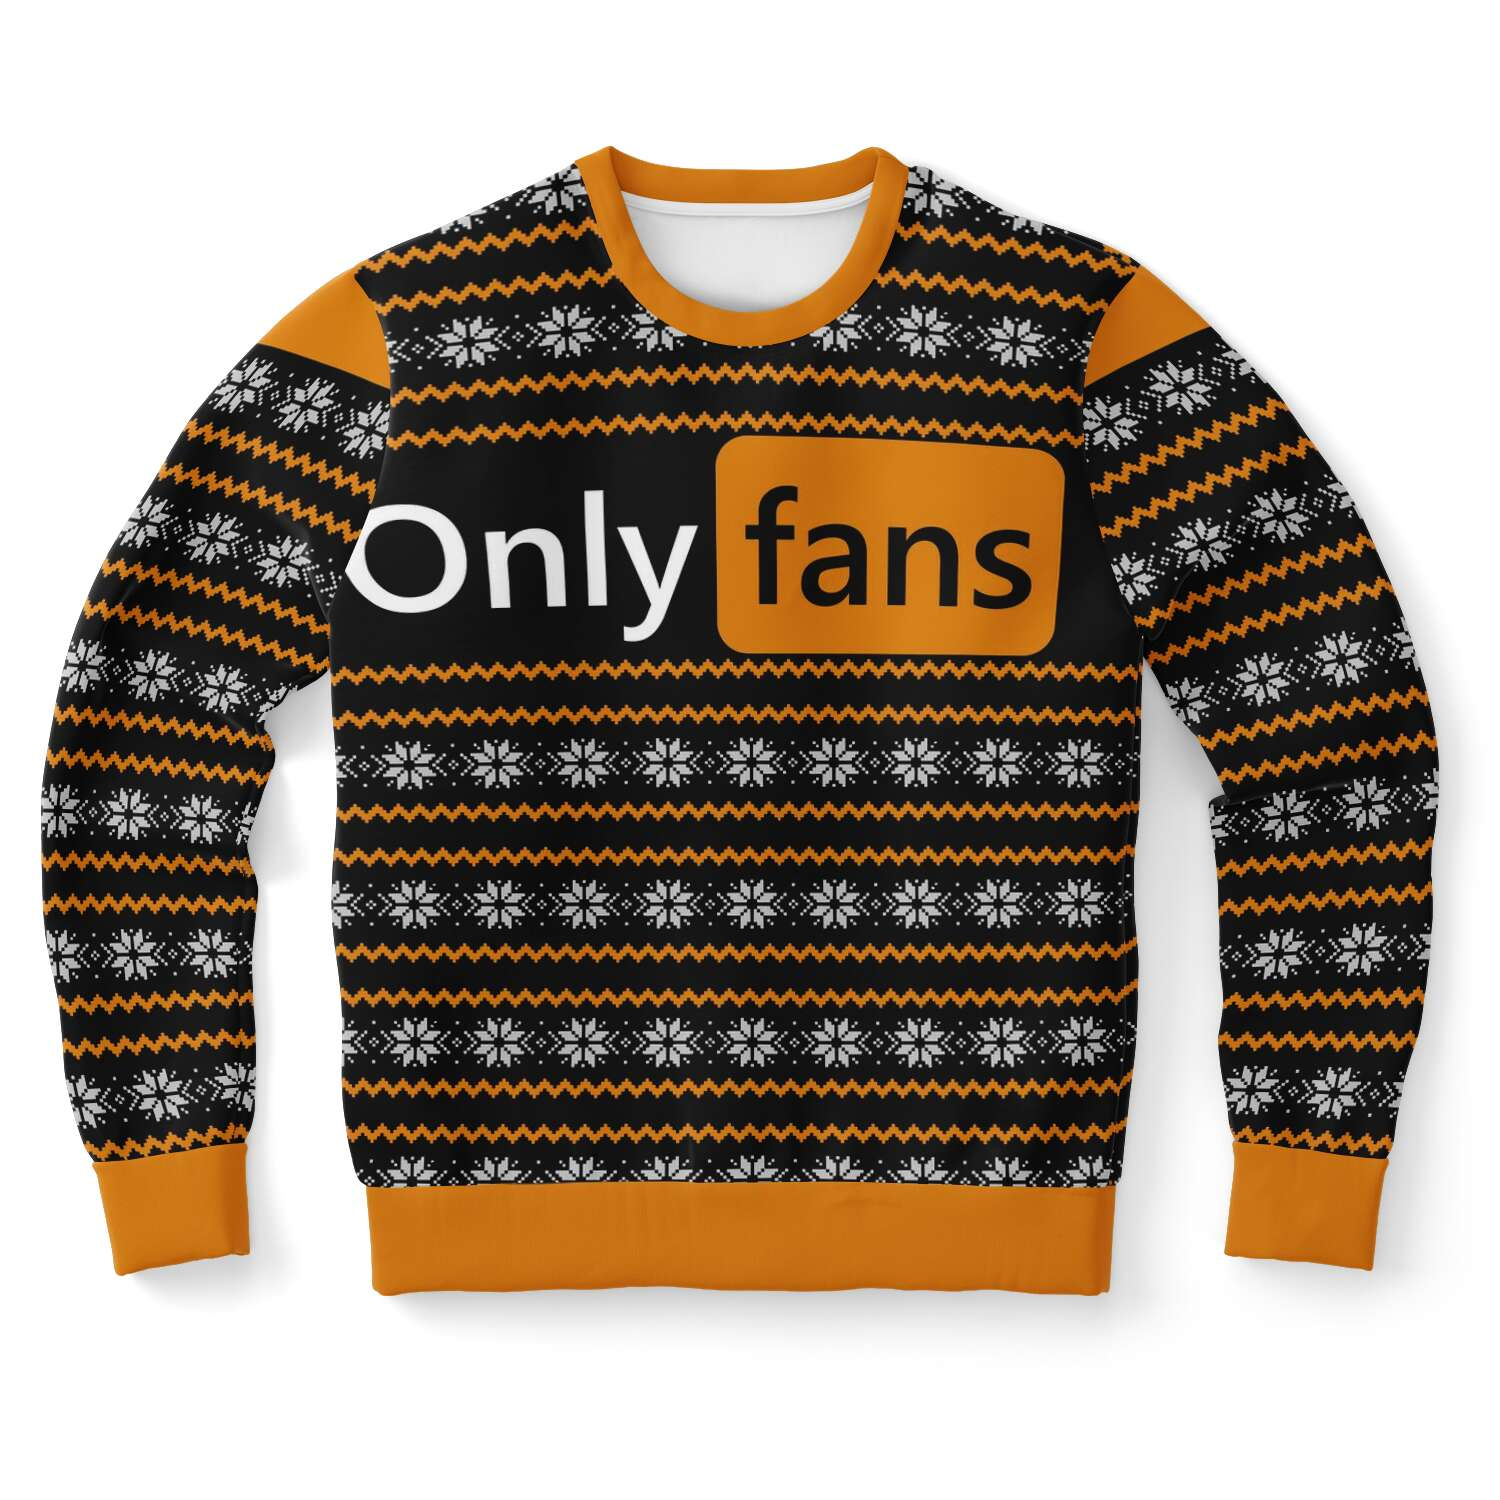 P*rnhub Style Onlyfans Ugly Sweater